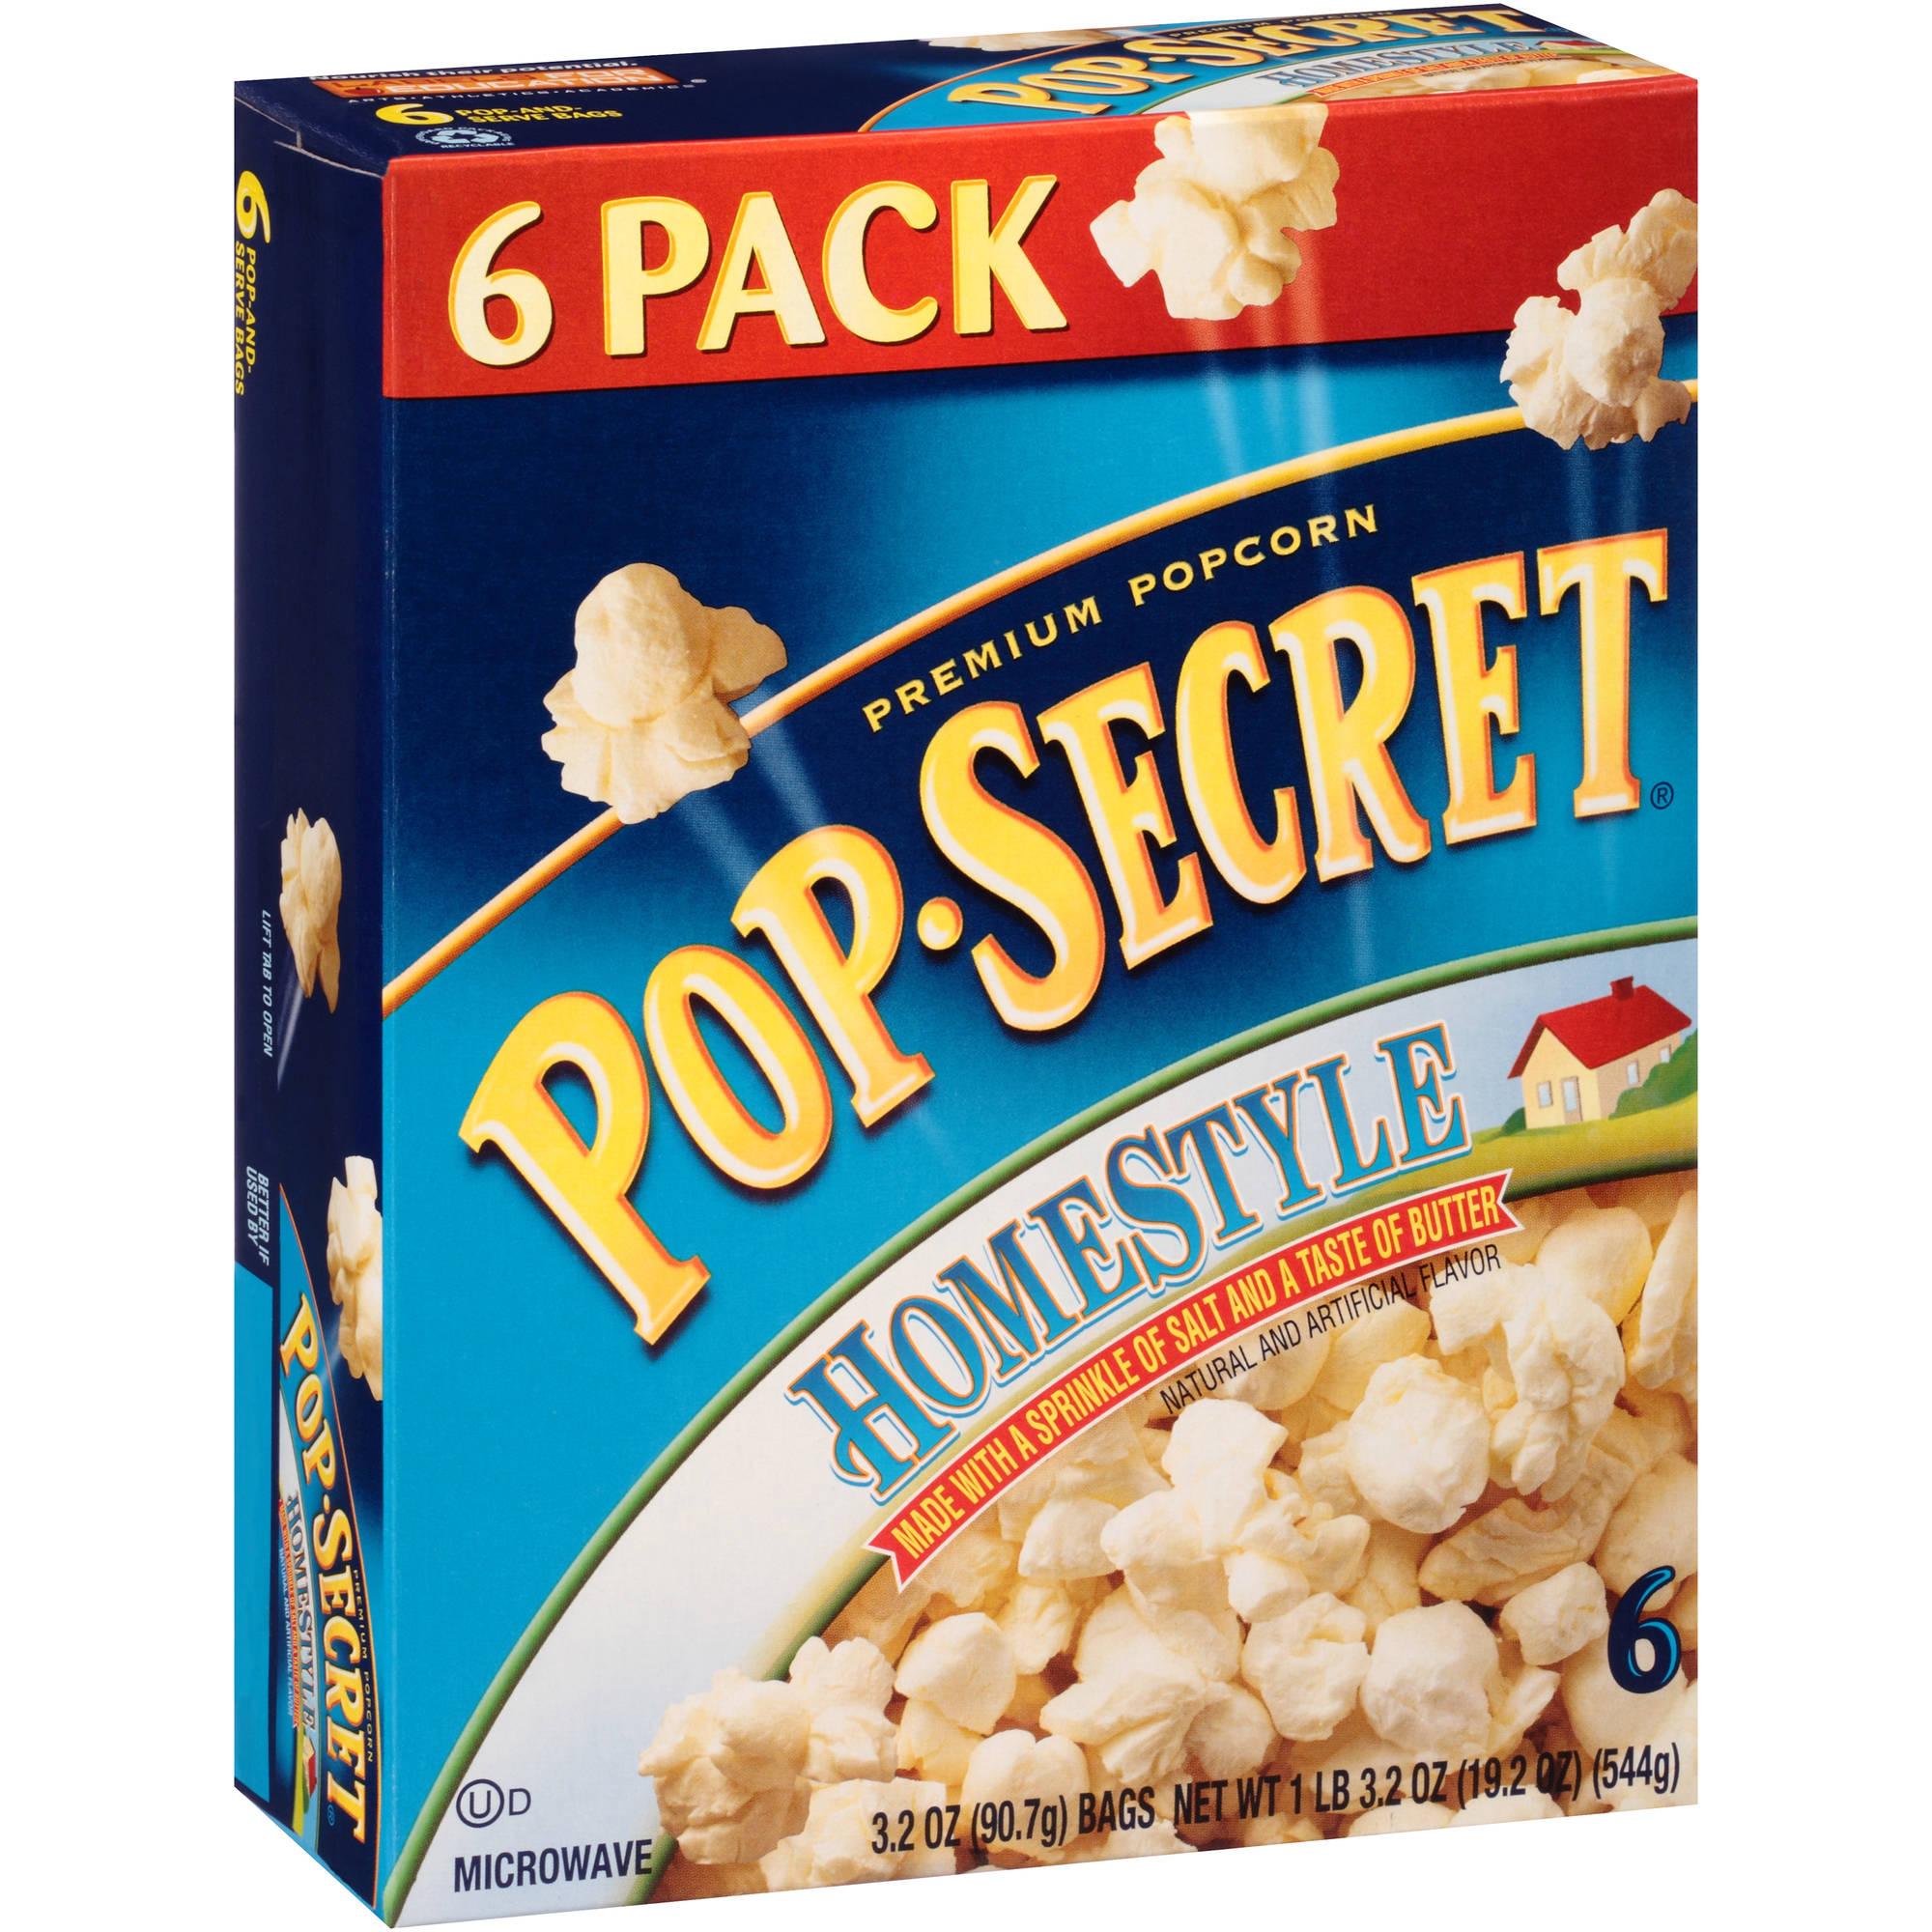 Pop-Secret Homestyle Popcorn, 3.2 oz